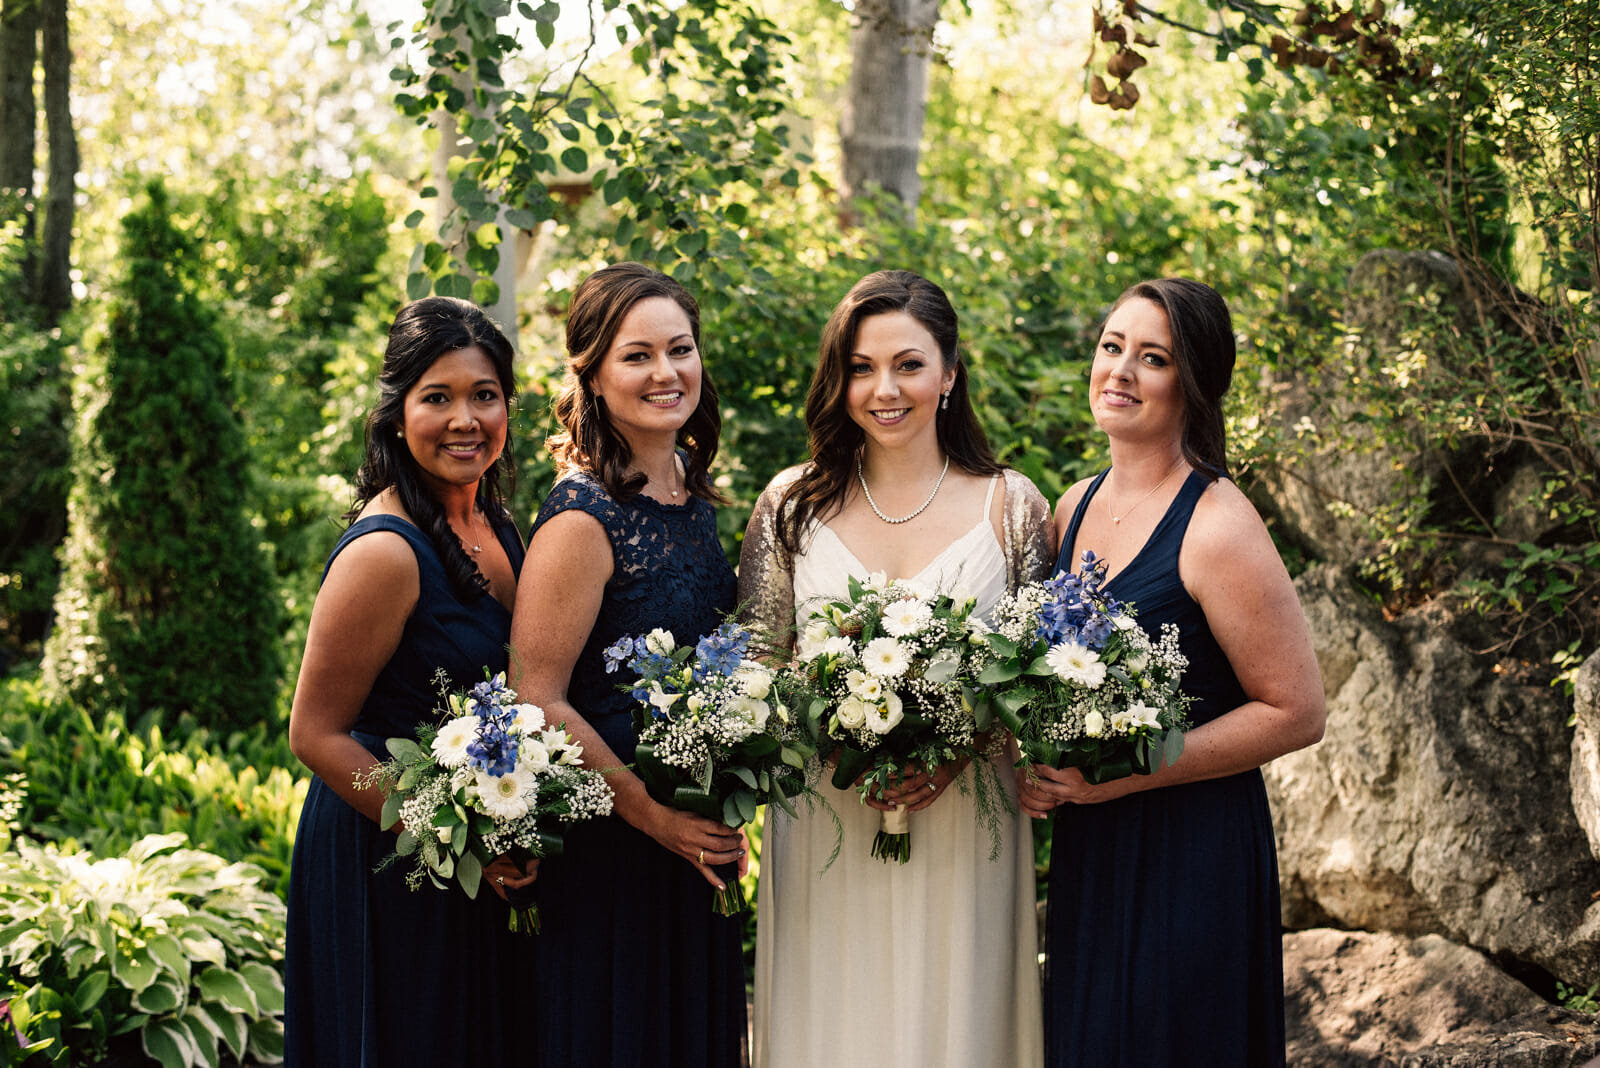 bridal party photos in wedding garden nottaawasaga